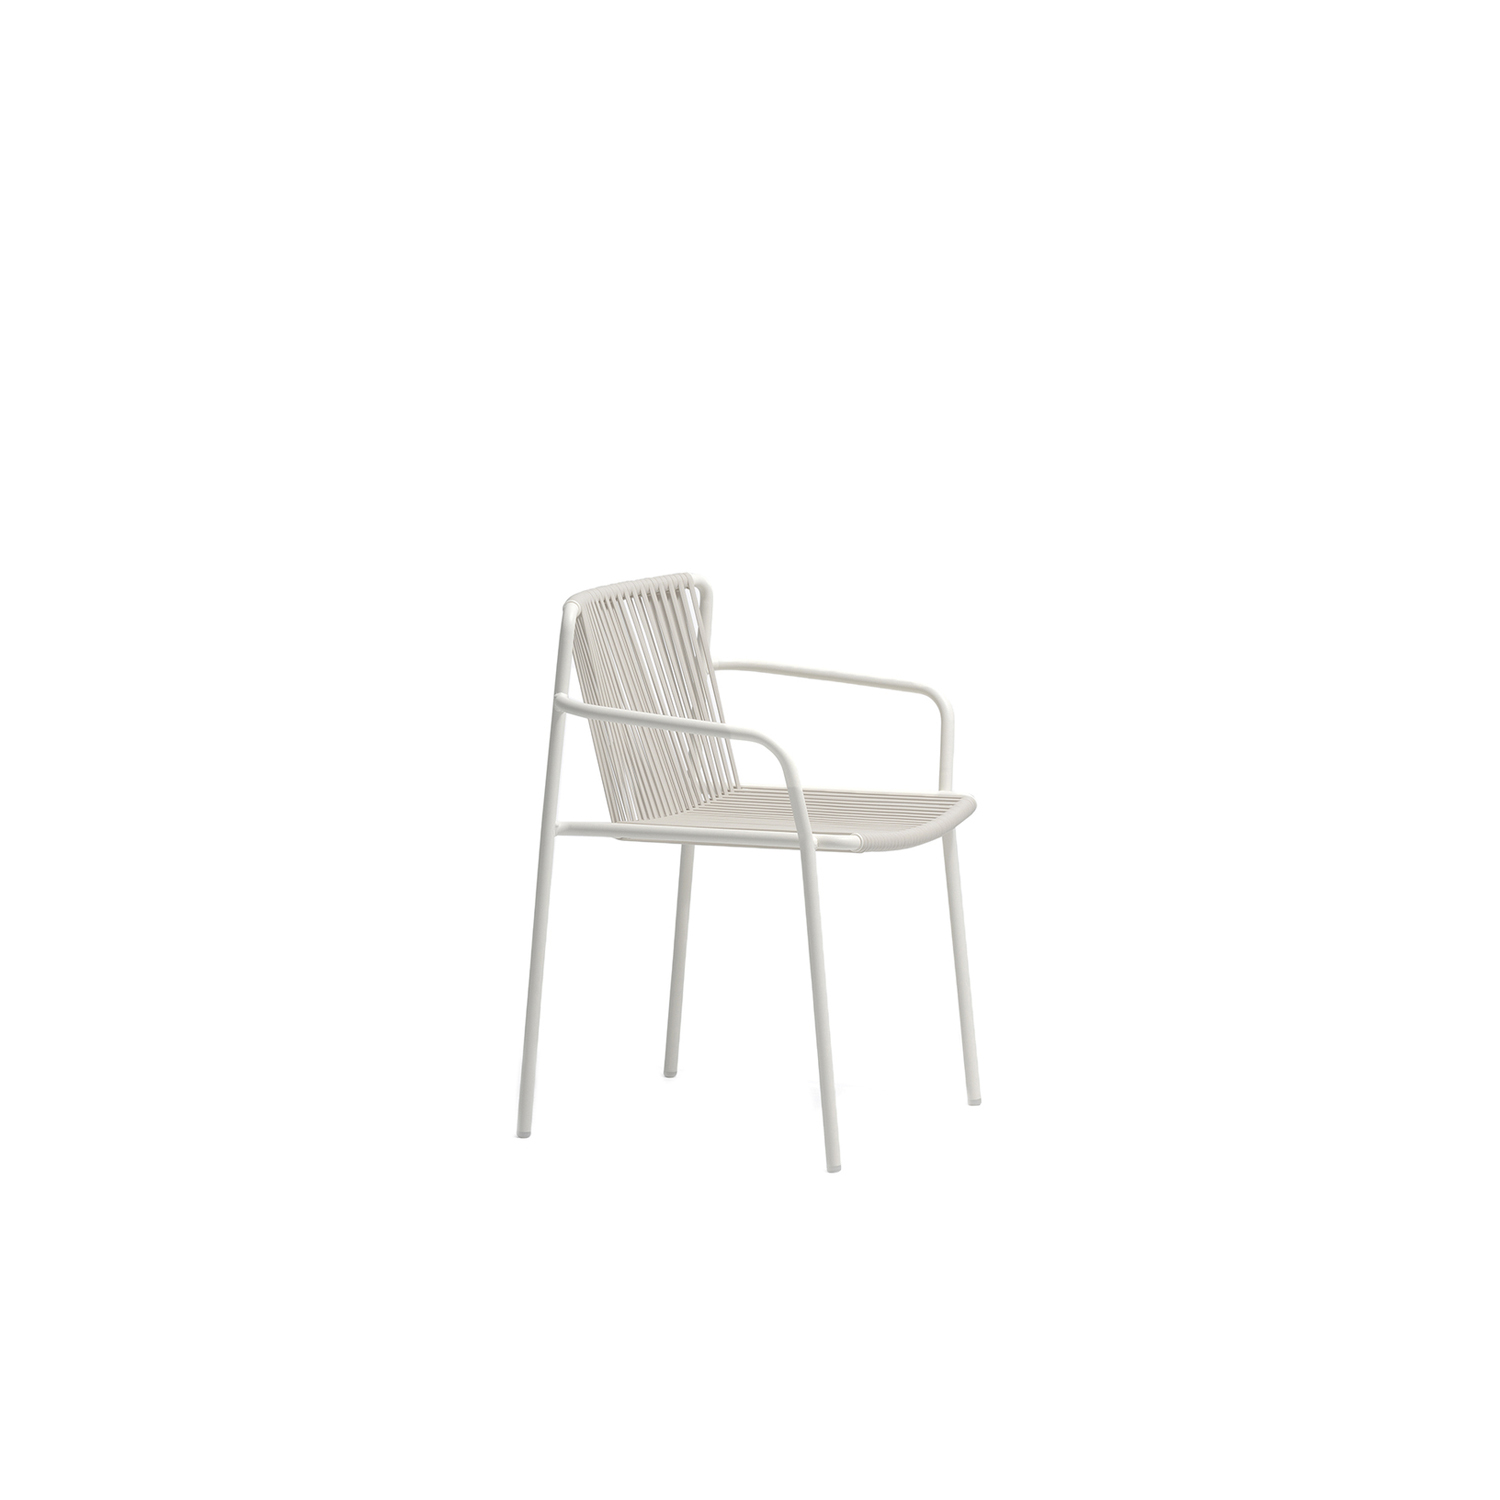 Tribeca Armchair - Tribeca takes us back in time with a modern reinterpretation of classic Sixties patio chairs made from steel and woven material. Armchair with Ø2cm tube structure powder coated for outdoor use, backrest and seat in woven extruded PVC with a nylon core. Specifically designed for outdoor use. Stackable. | Matter of Stuff